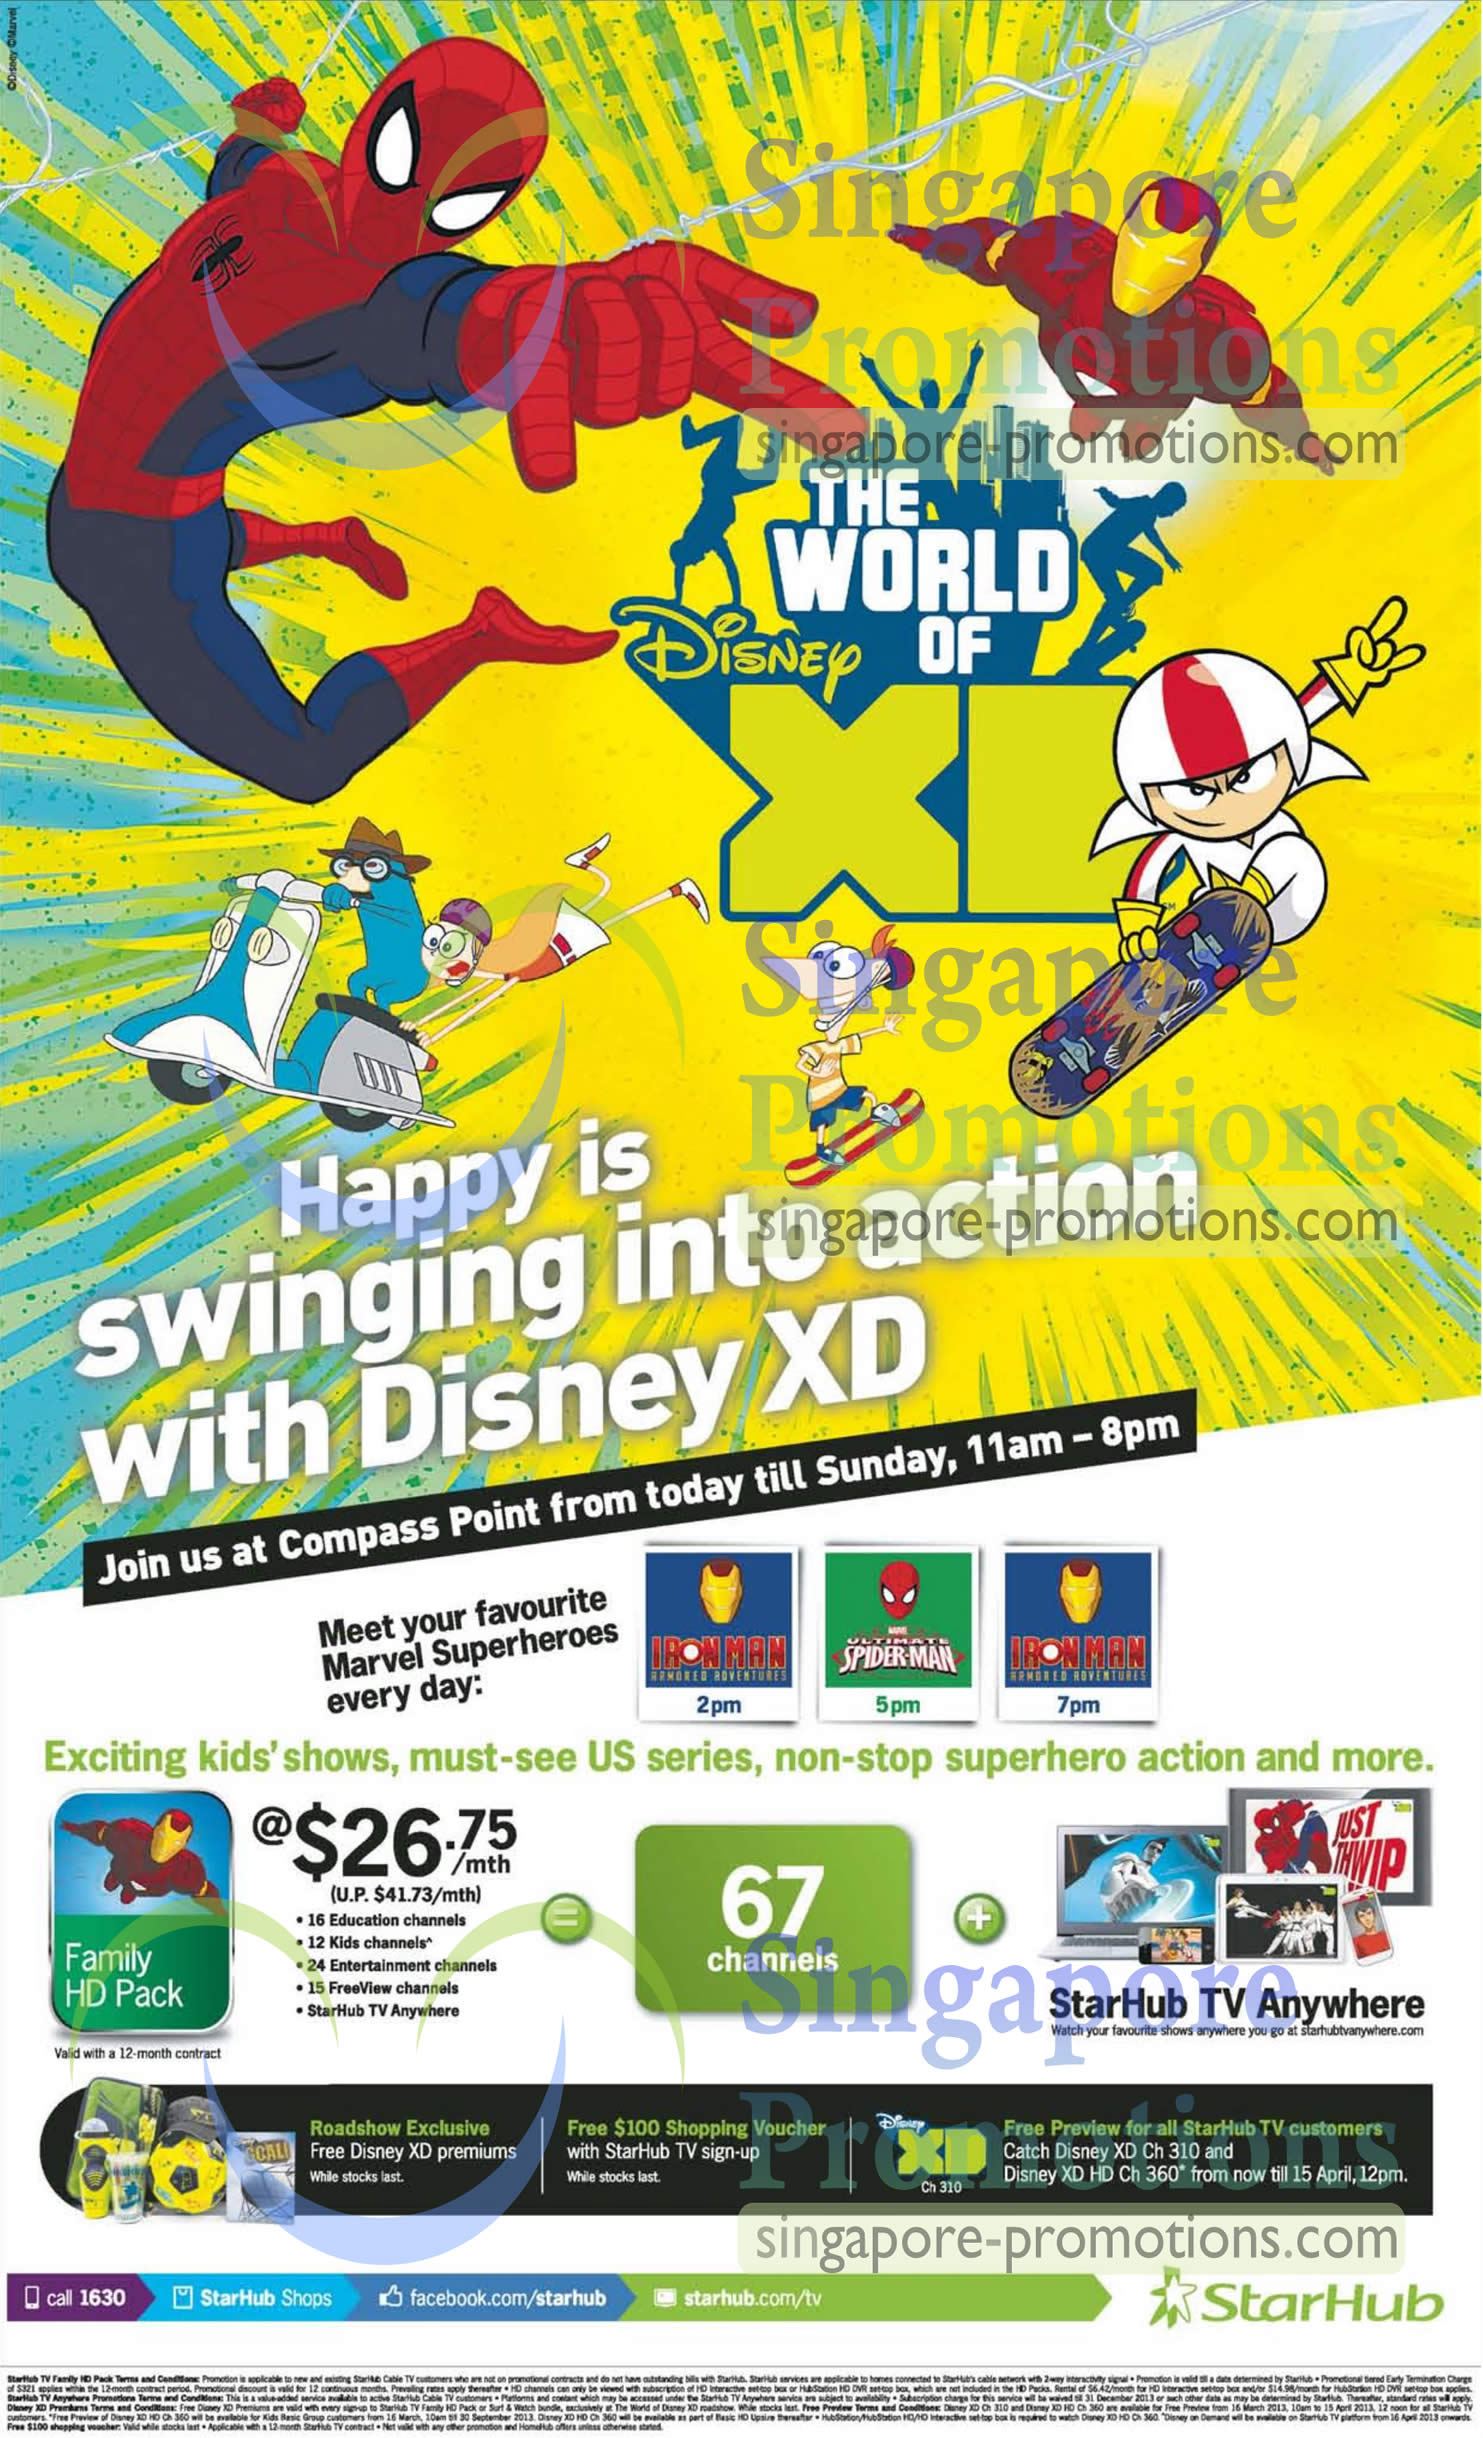 Cable TV Compass Point Roadshow, Family HD Pack 67 Channels, Disney XD